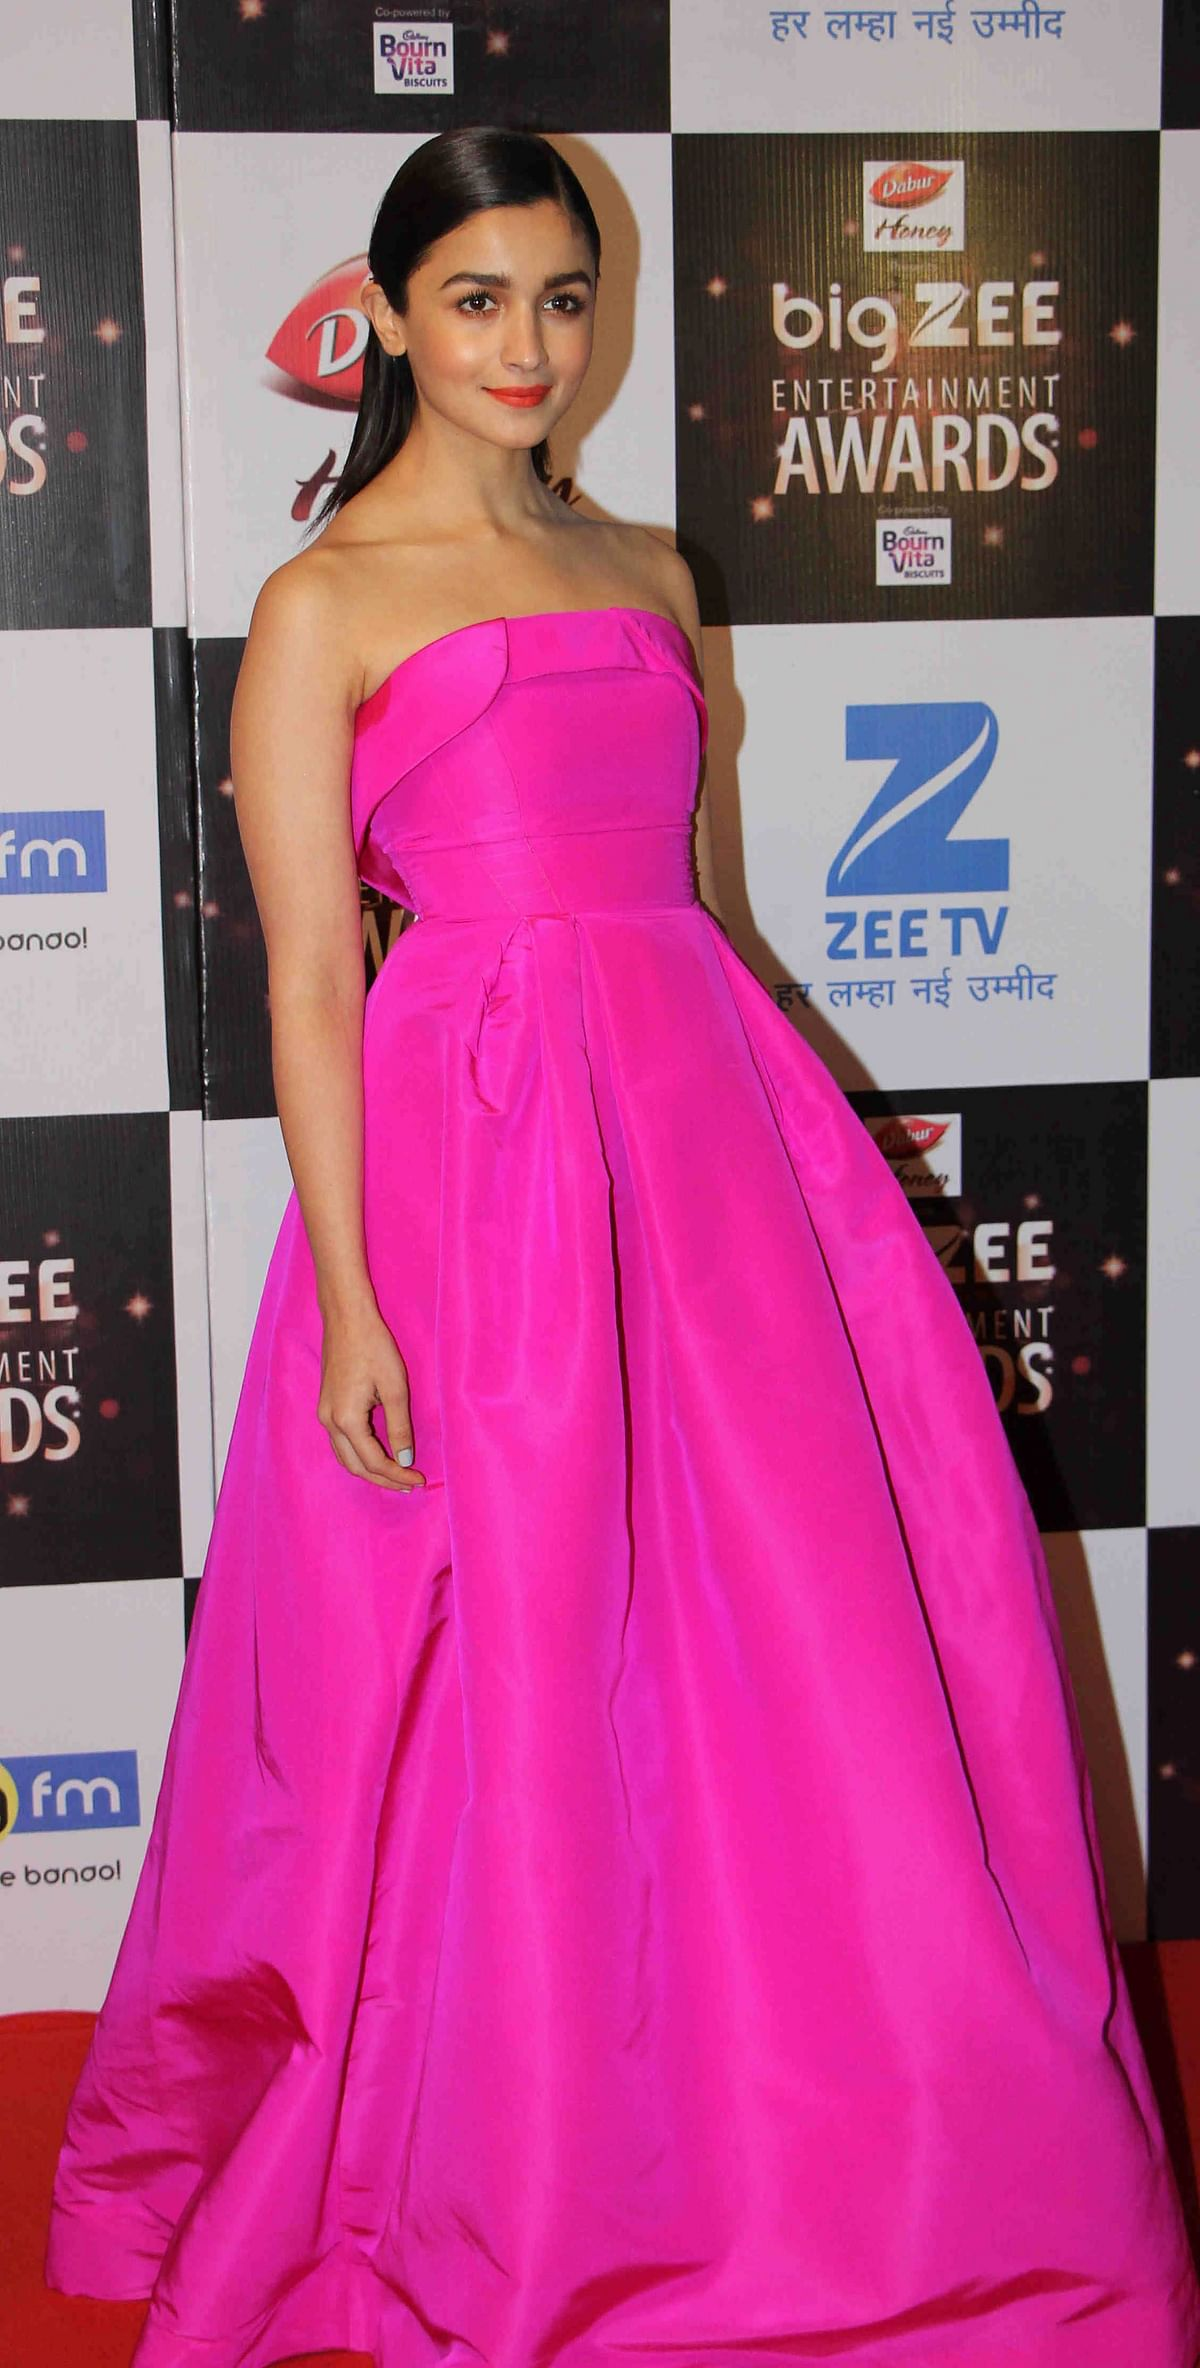 In this photograph taken on July 29, 2017, Indian Bollywood actress Alia Bhatt attends the BIG ZEE Entertainment Awards 2017 ceremony in Mumbai. / AFP PHOTO / STR